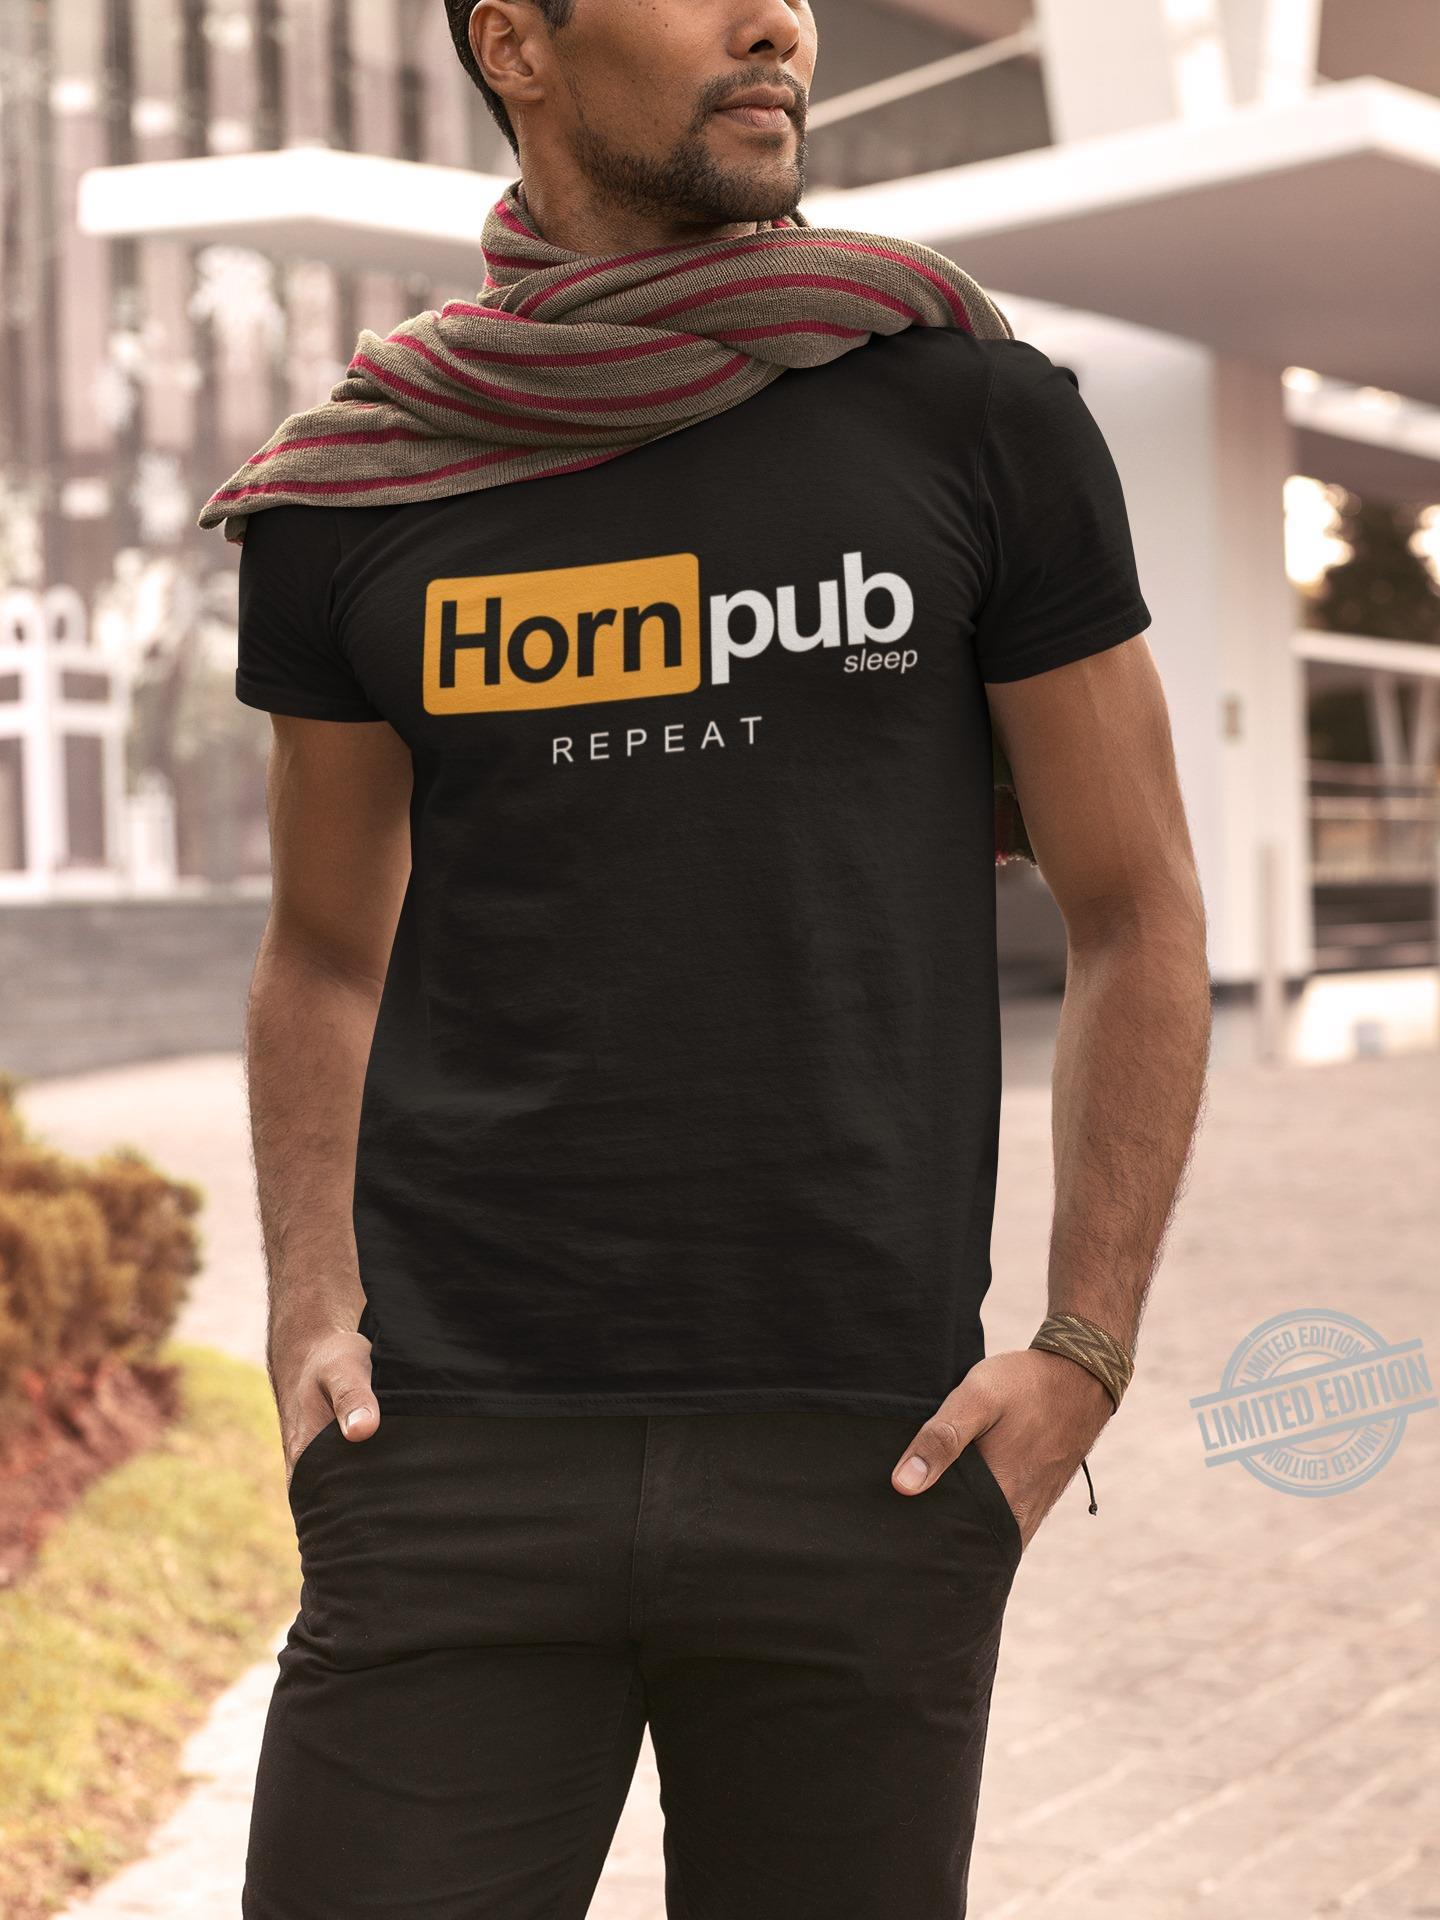 Horn Pub Sleep Repeat Shirt